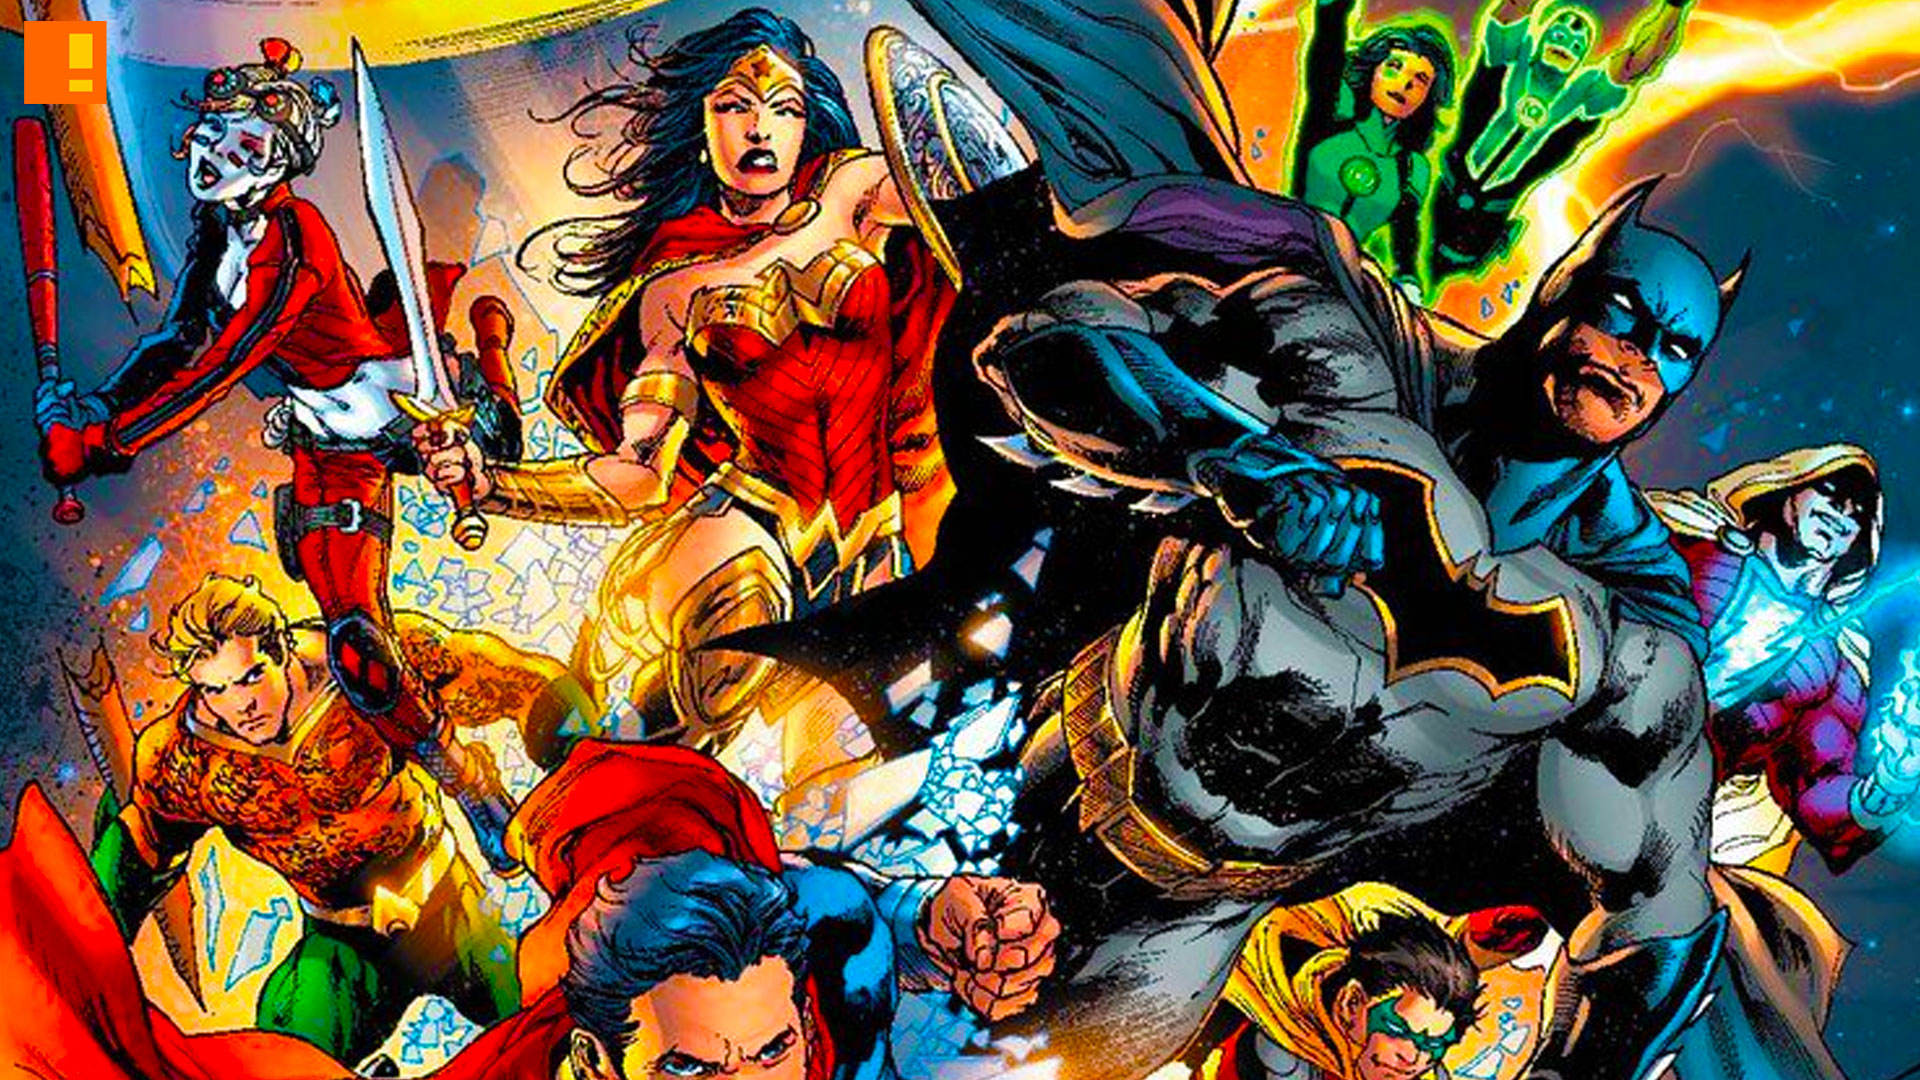 dc comics, preview, rebirth, dc, superman, batman, green lantern , wonder woman, flash, aquaman,